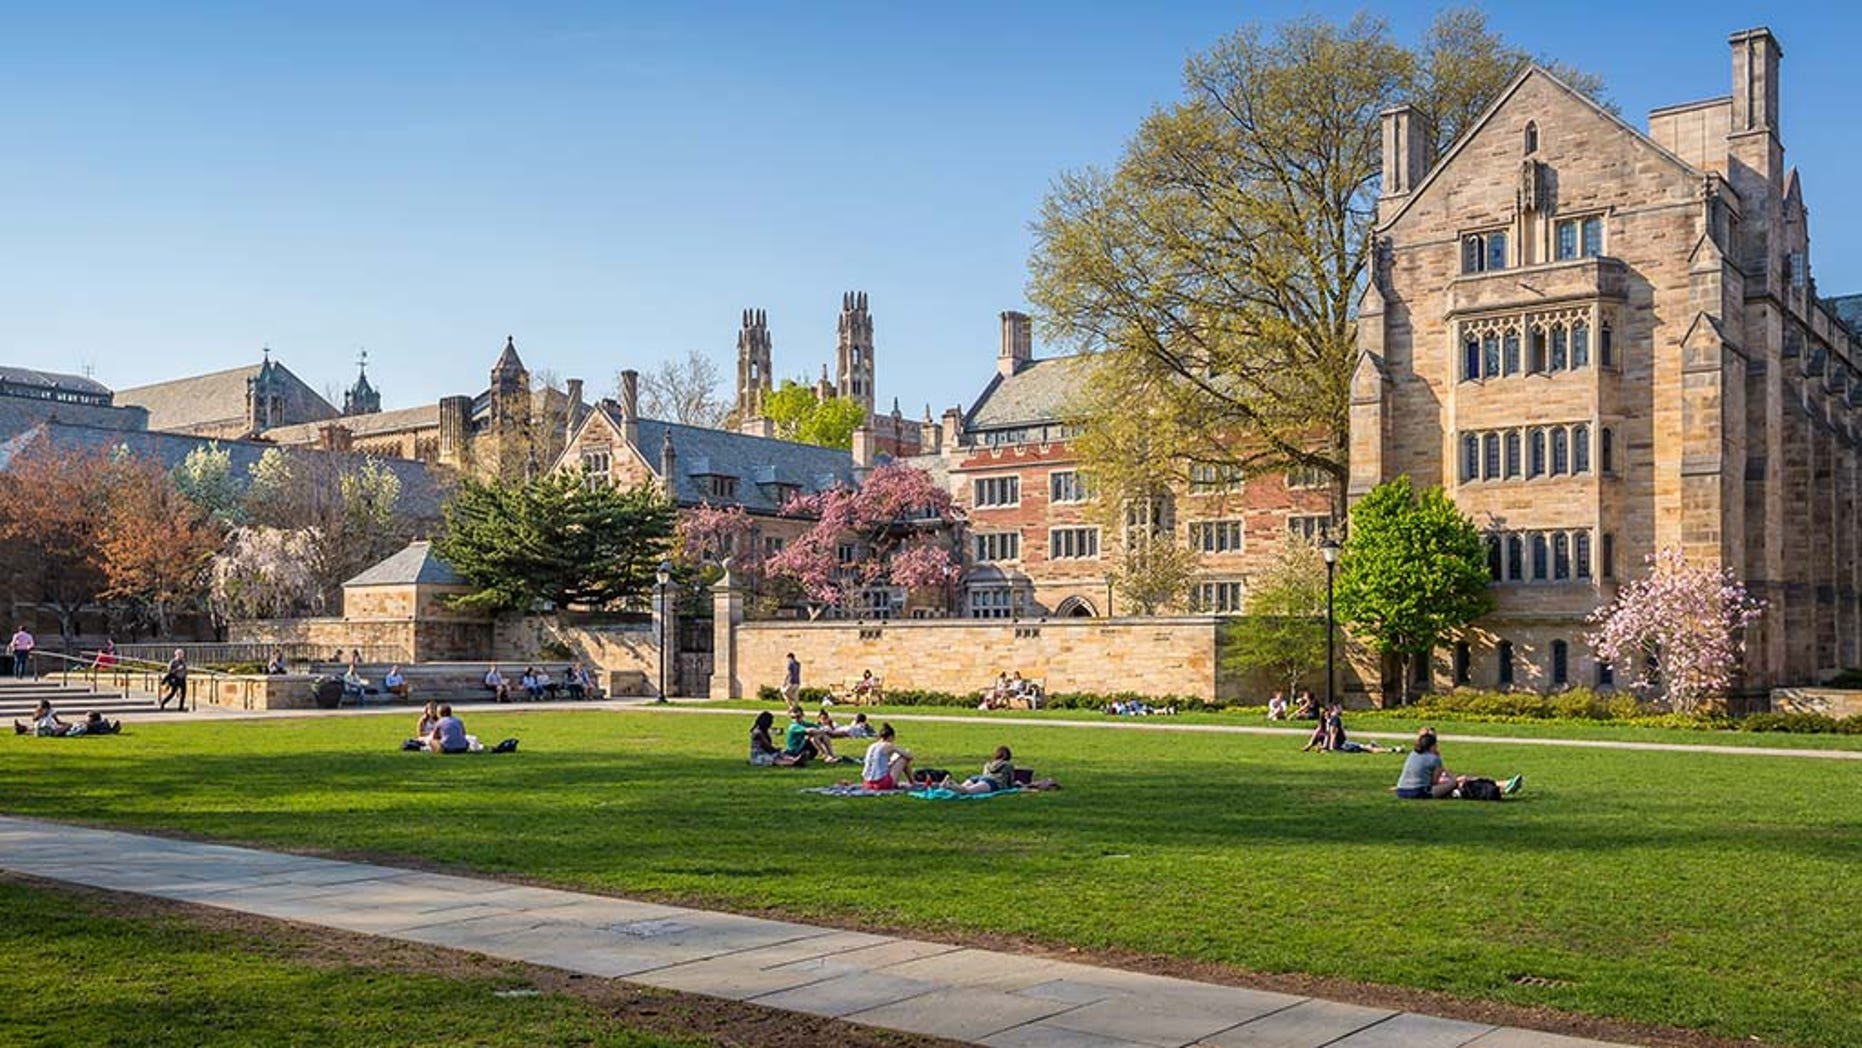 A lawsuit filed in a New Jersey federal court on Nov. 5 details the allegation made by a former Yale student that the university violated her constitutional rights and unlawfully held her for treatment at Yale-New Haven Hospital before placing her on mandatory medical leave during her senior year.